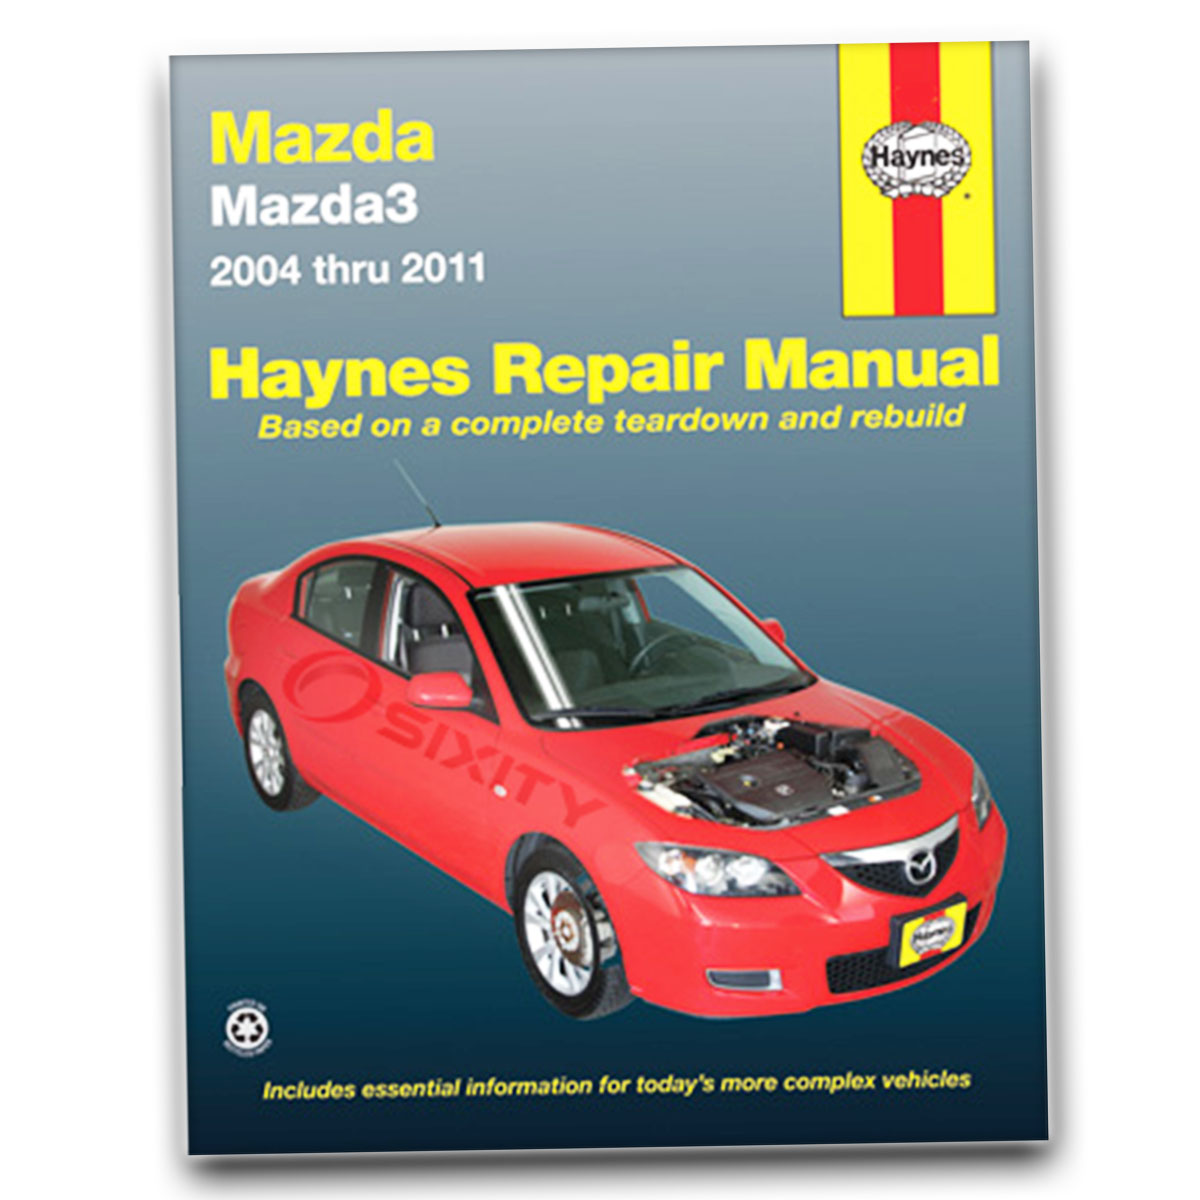 Mazda 3 Haynes Repair Manual I Mazdaspeed Sp23 Shop Service Garage Rh Ebay  Com 2008 Mazdaspeed 3 I Sports 2008 Mazda 3s